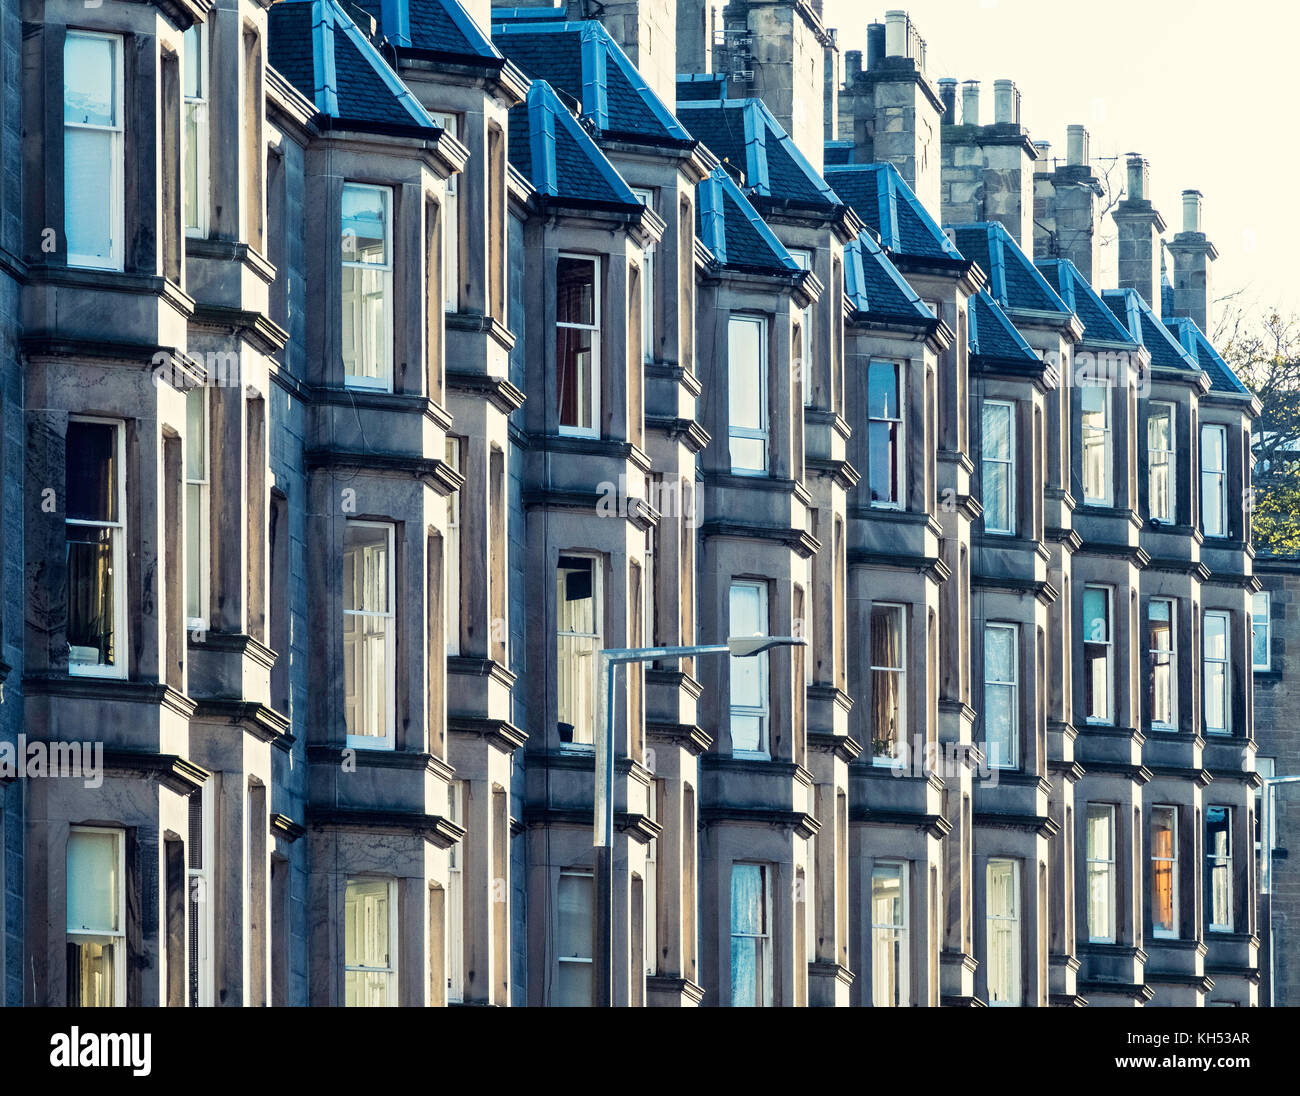 Detail of row of sandstone terraced apartments (tenements) on Comely Bank Avenue in Edinburgh, Scotland, United - Stock Image